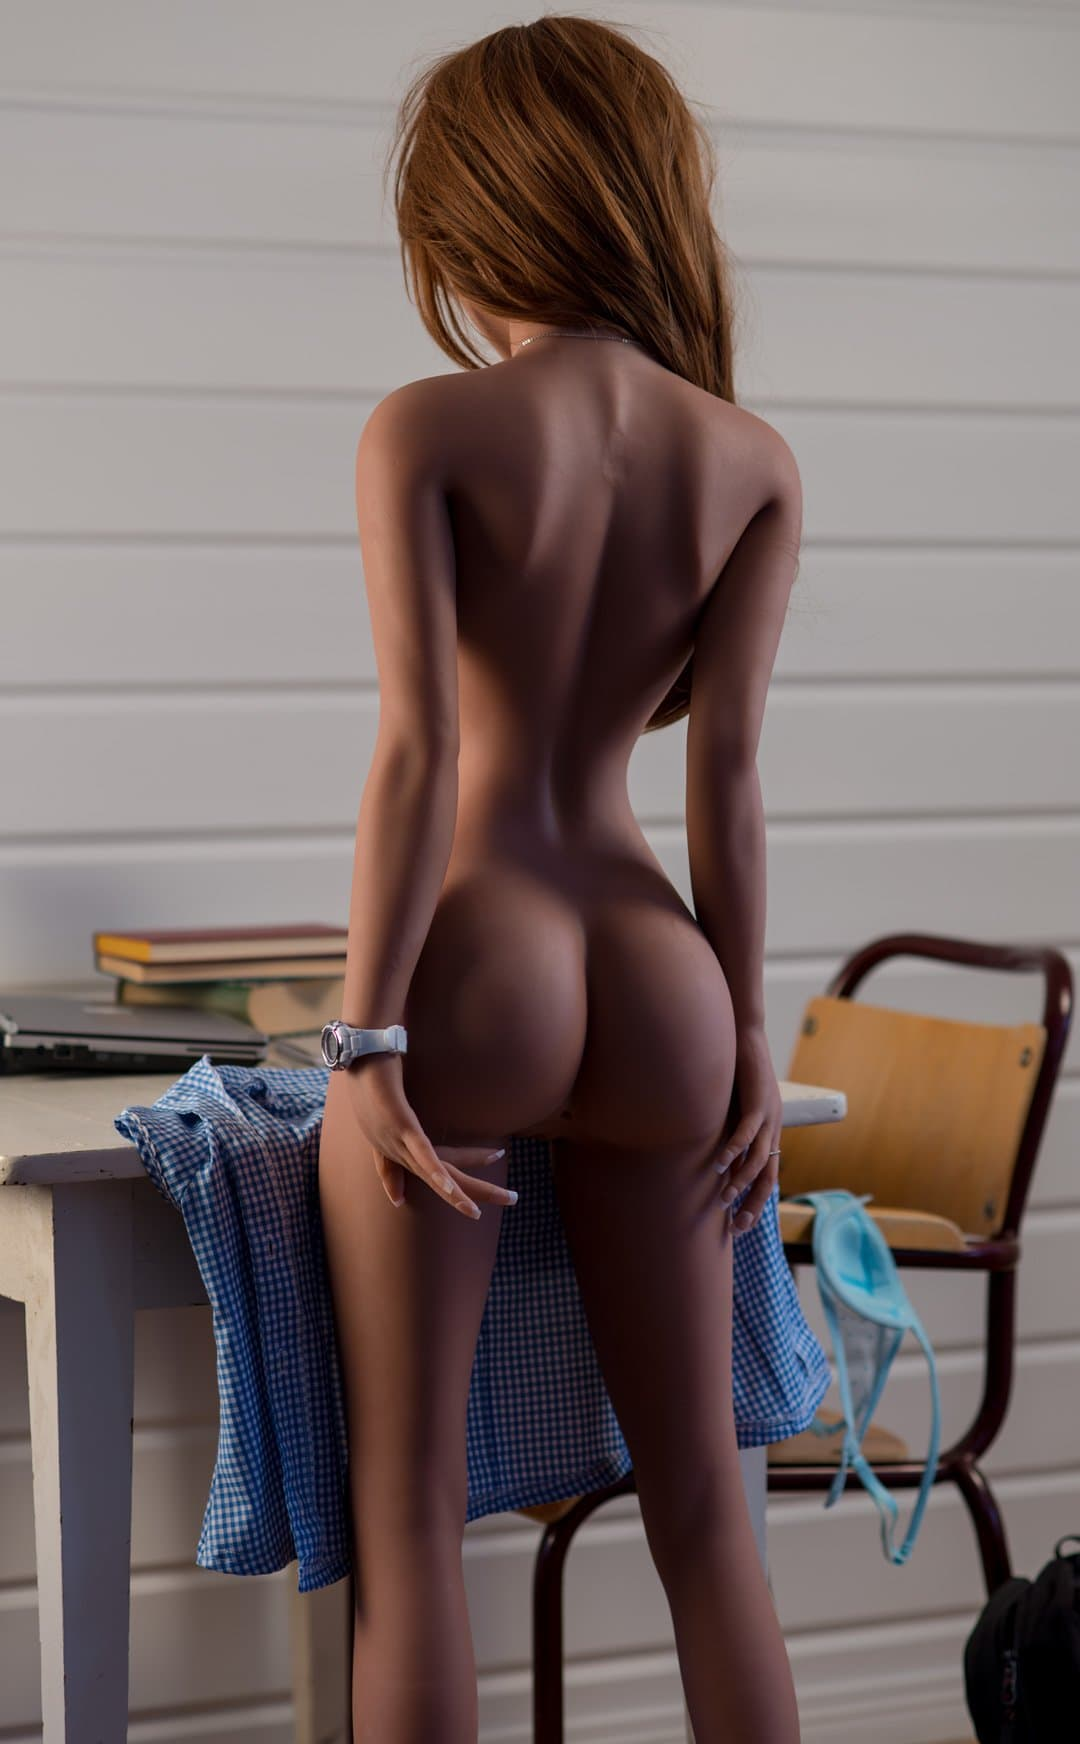 caroline 155cm brown hair skinny flat chested tan skin tpe wm asian sex doll(10)